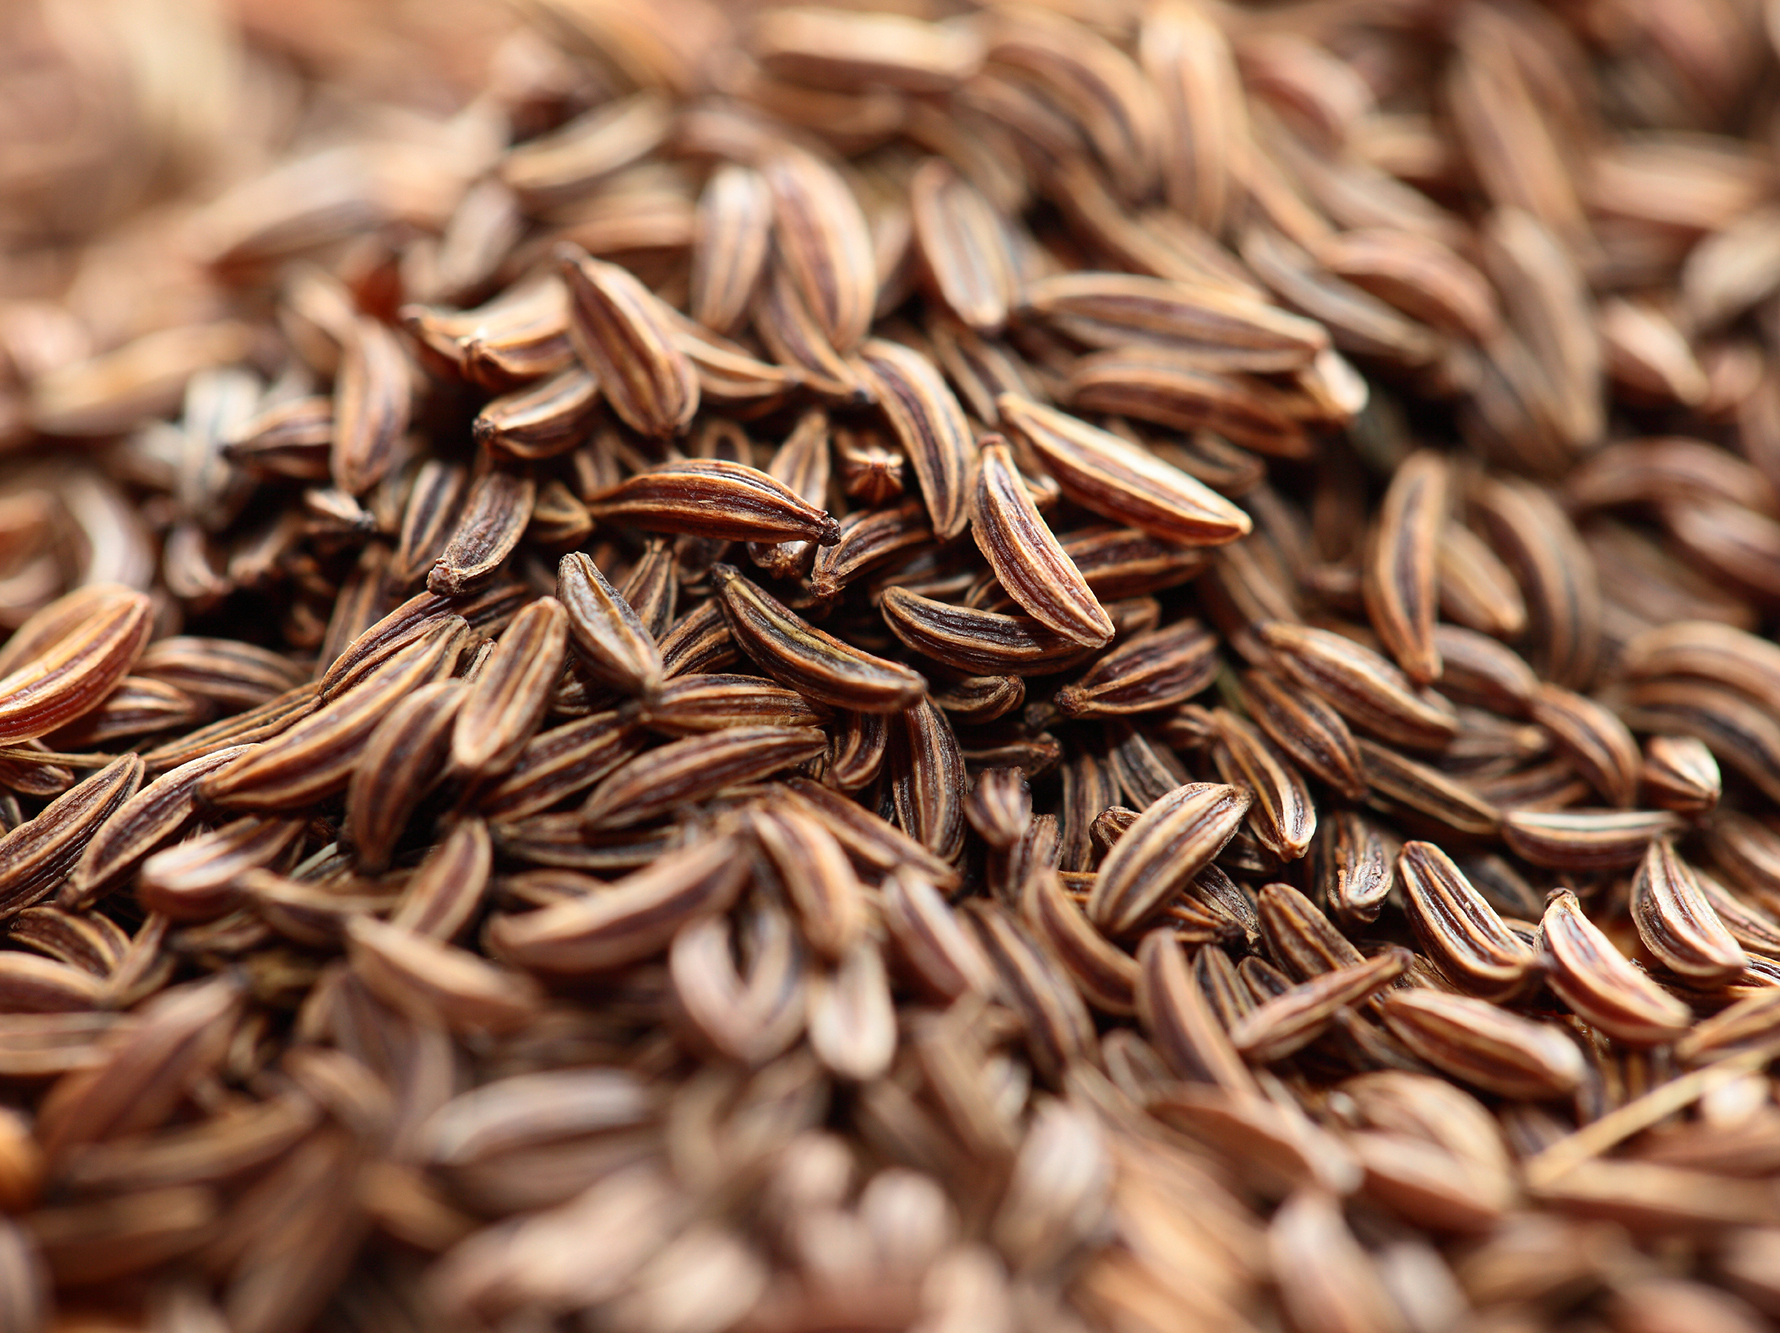 The cuisines of the classical world made use of cumin both as a flavoring and a drug. Photo: iStockphoto